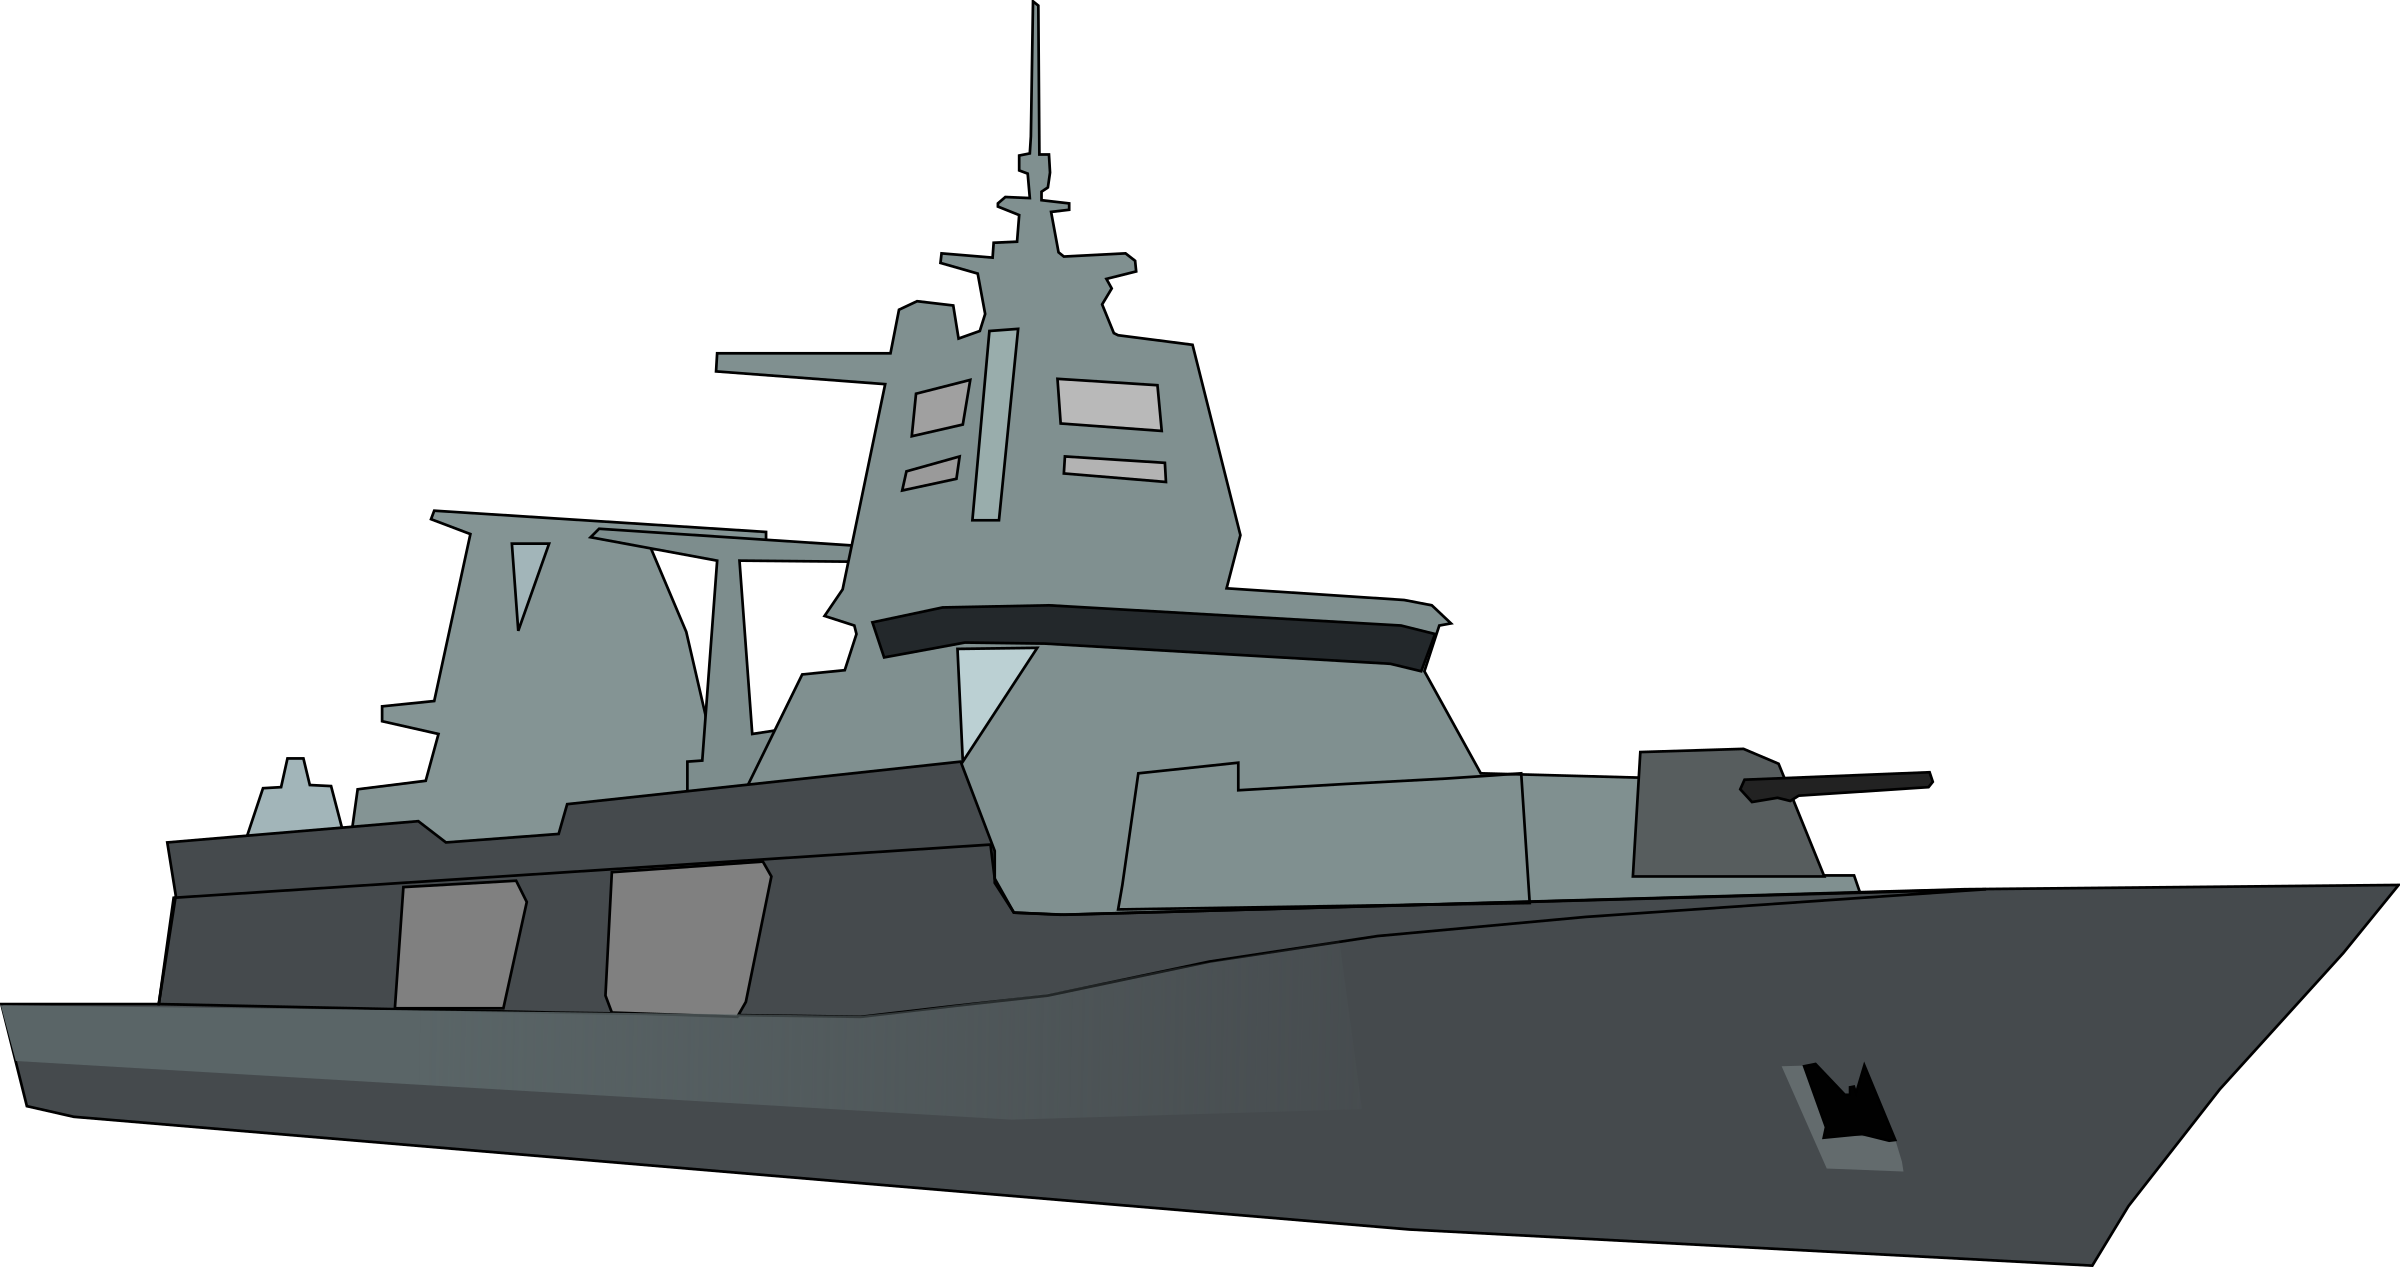 German Bundeswehr frigate by JPortugall